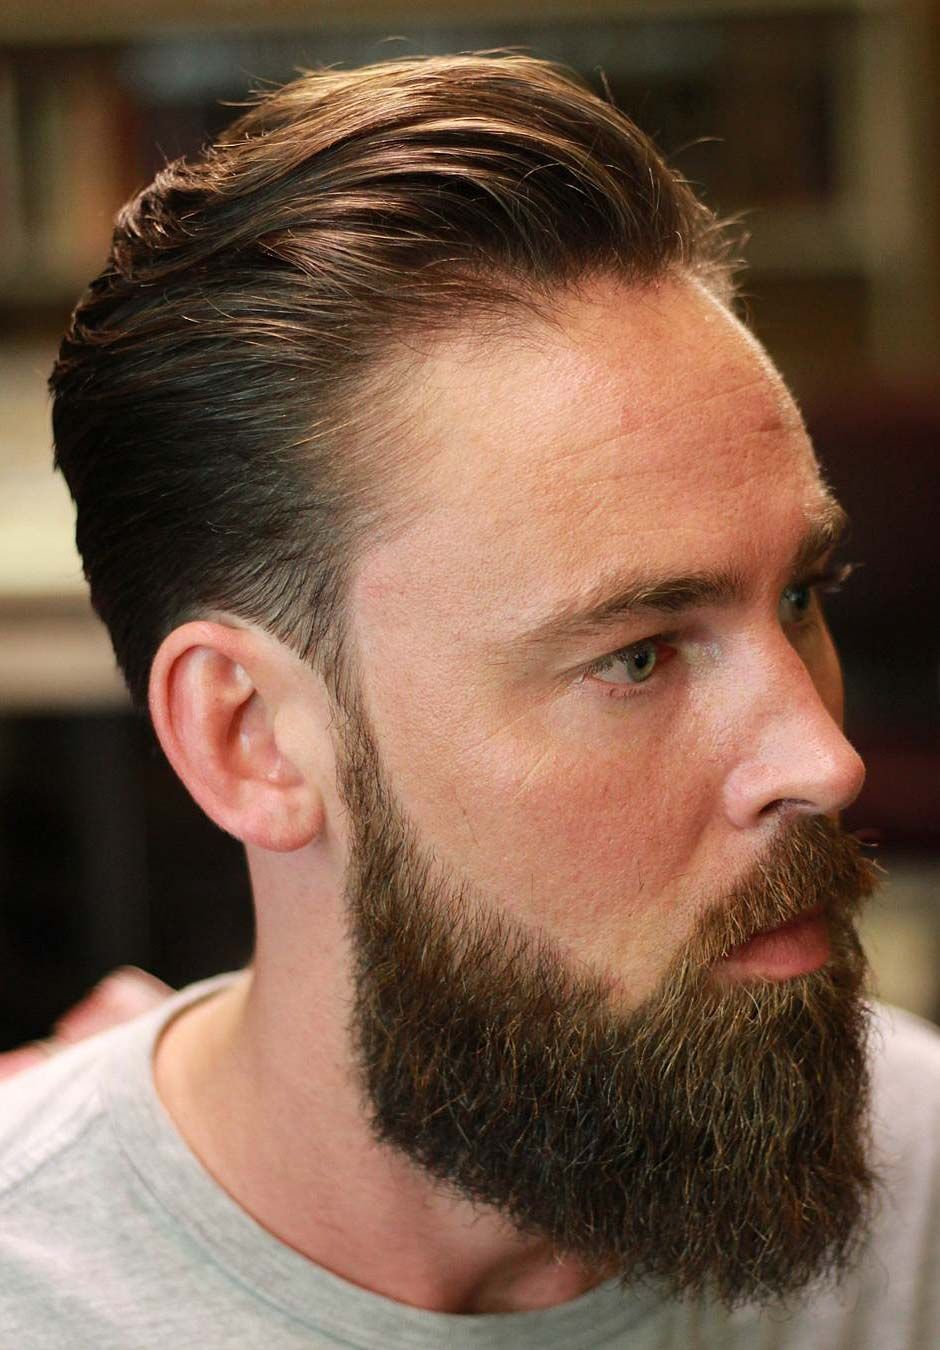 20 Hairstyles For Men With Thin Hair Add More Volume Thin Hair Men Haircuts For Men Tapered Haircut